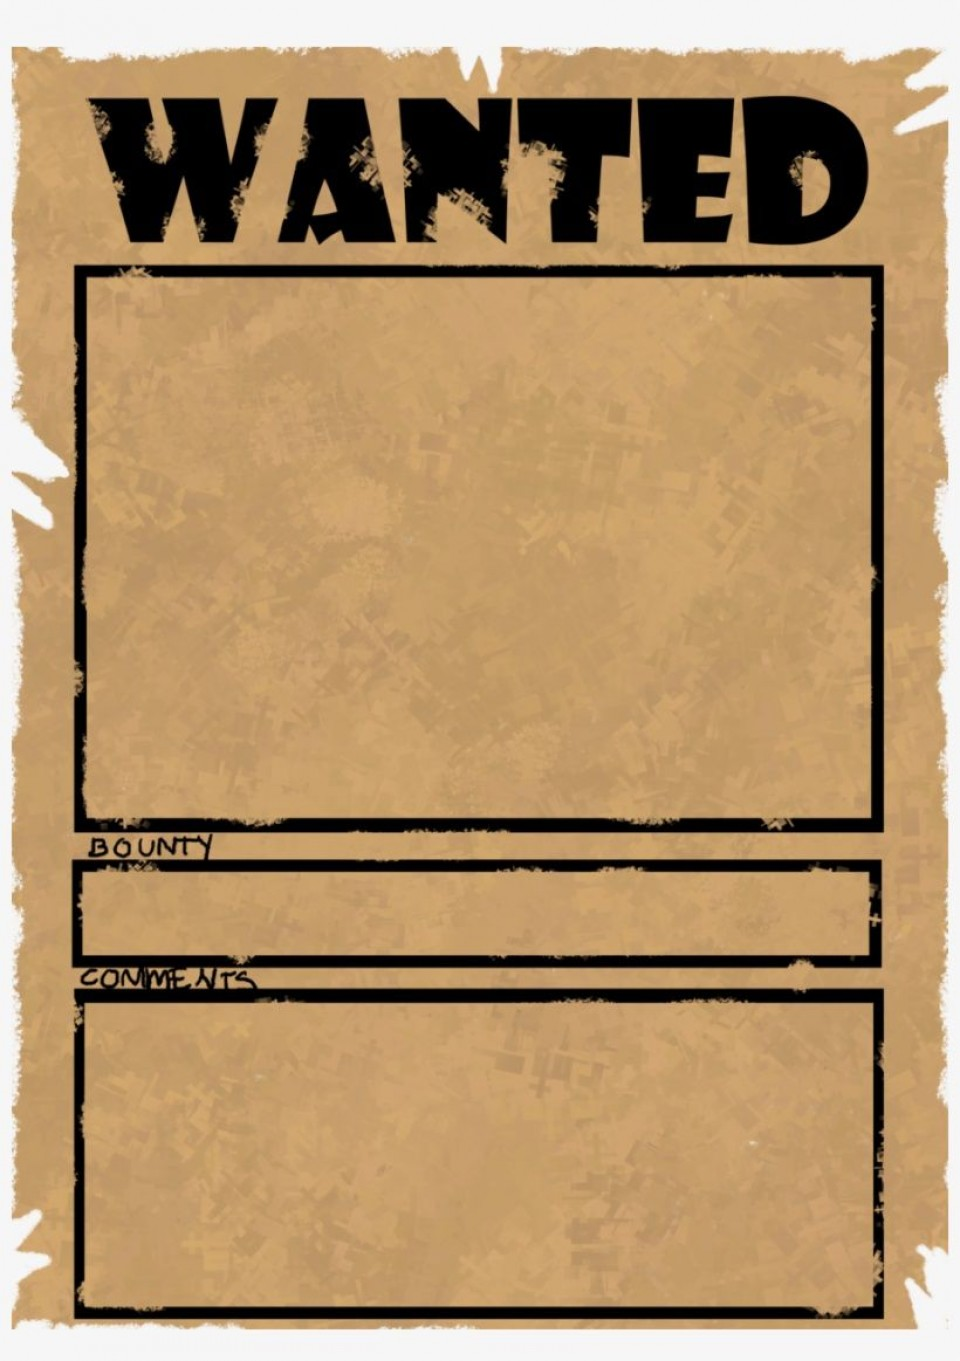 002 Imposing Wanted Poster Template Microsoft Word High Resolution  Western Most960